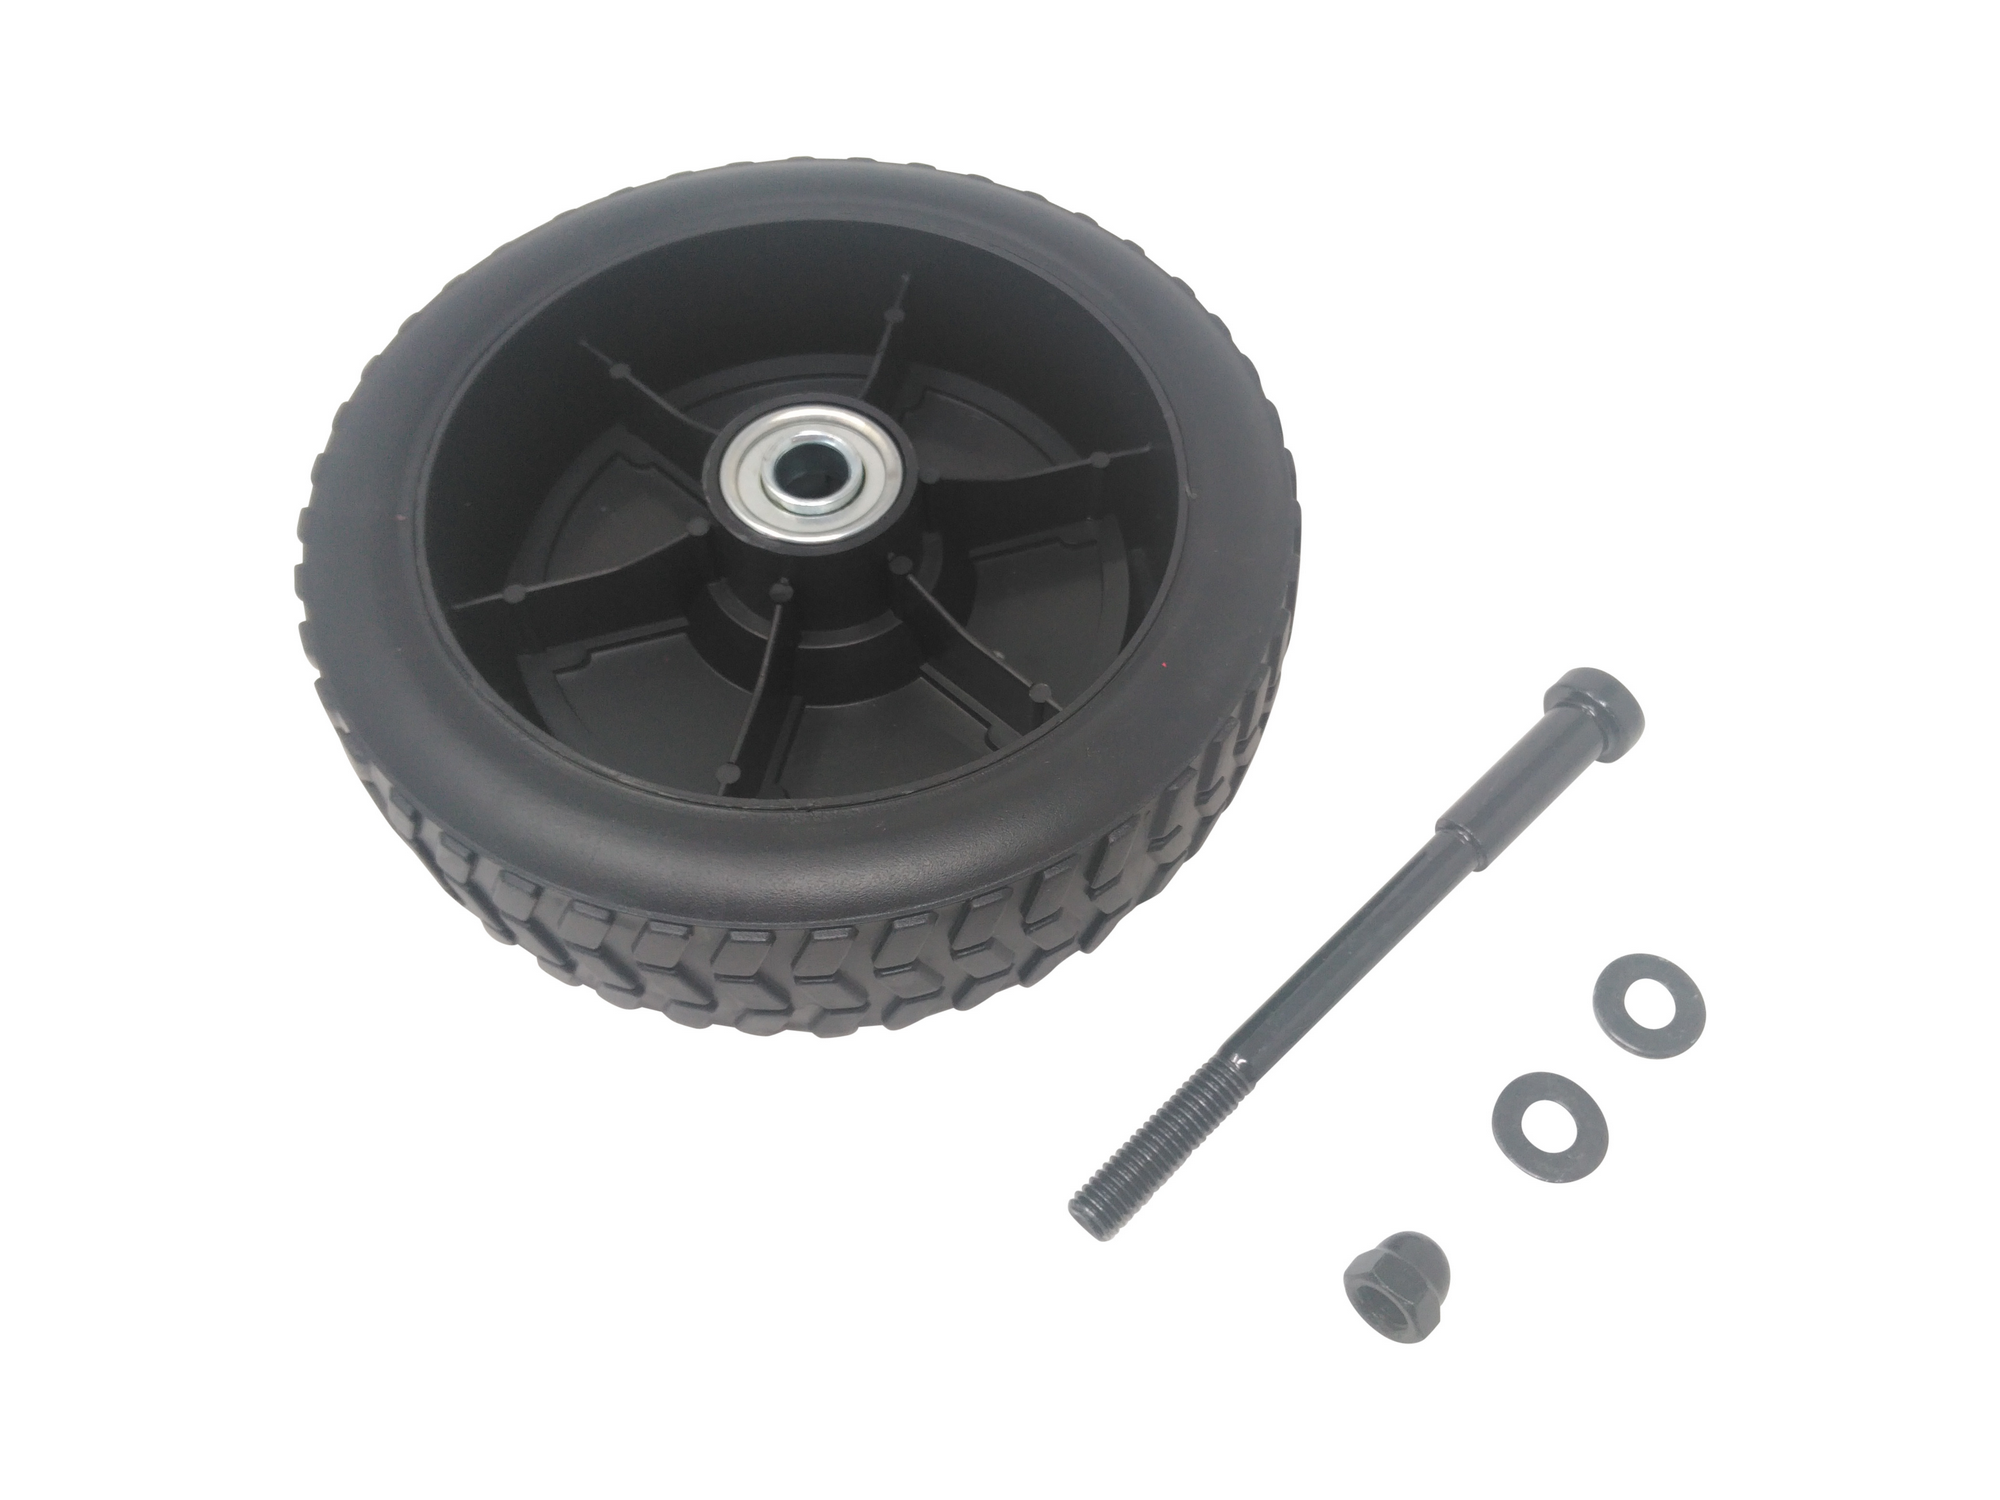 KIT0213 | Traeger Timberline Wheel Kit   KIT0213 (HDW372)